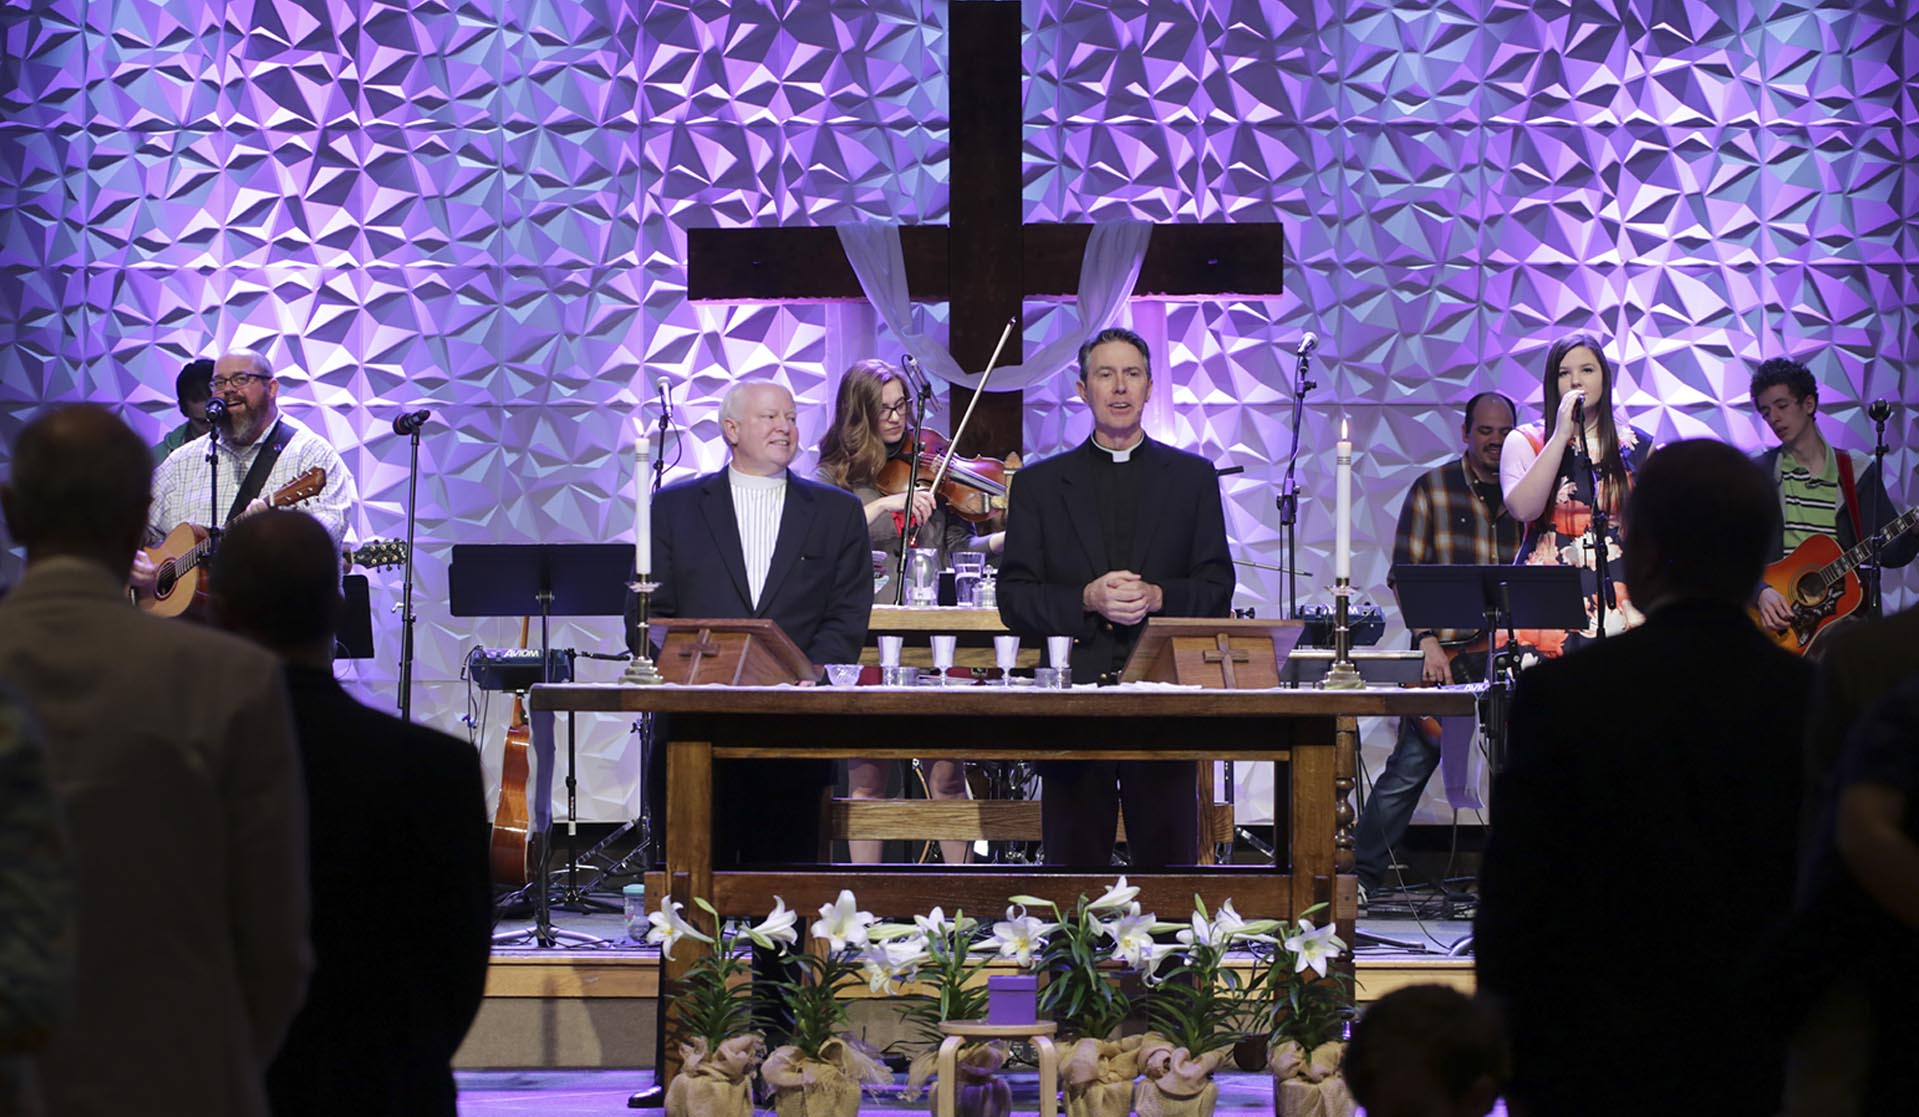 August 12 - Contemporary Service